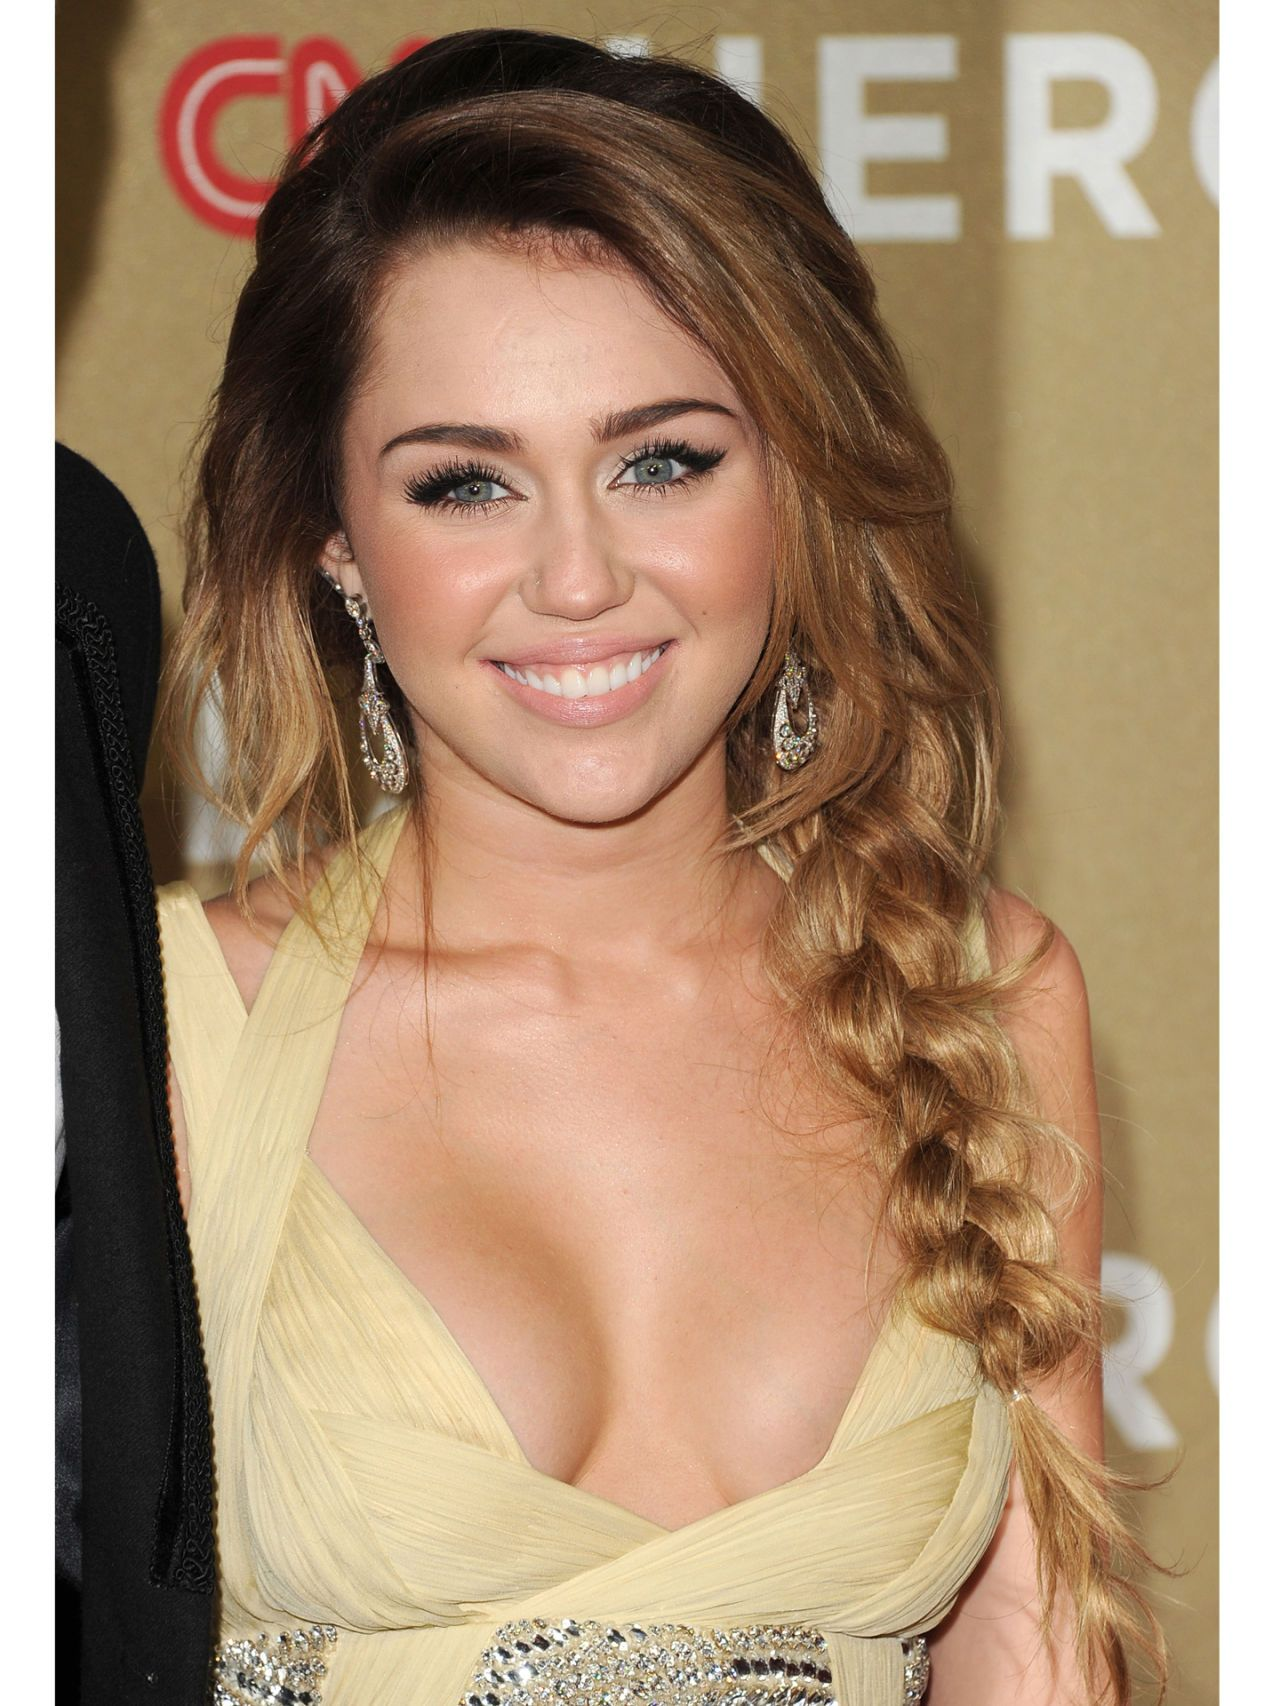 Miley Cyrus Beauty Makeover Pics Of Miley Cyrus